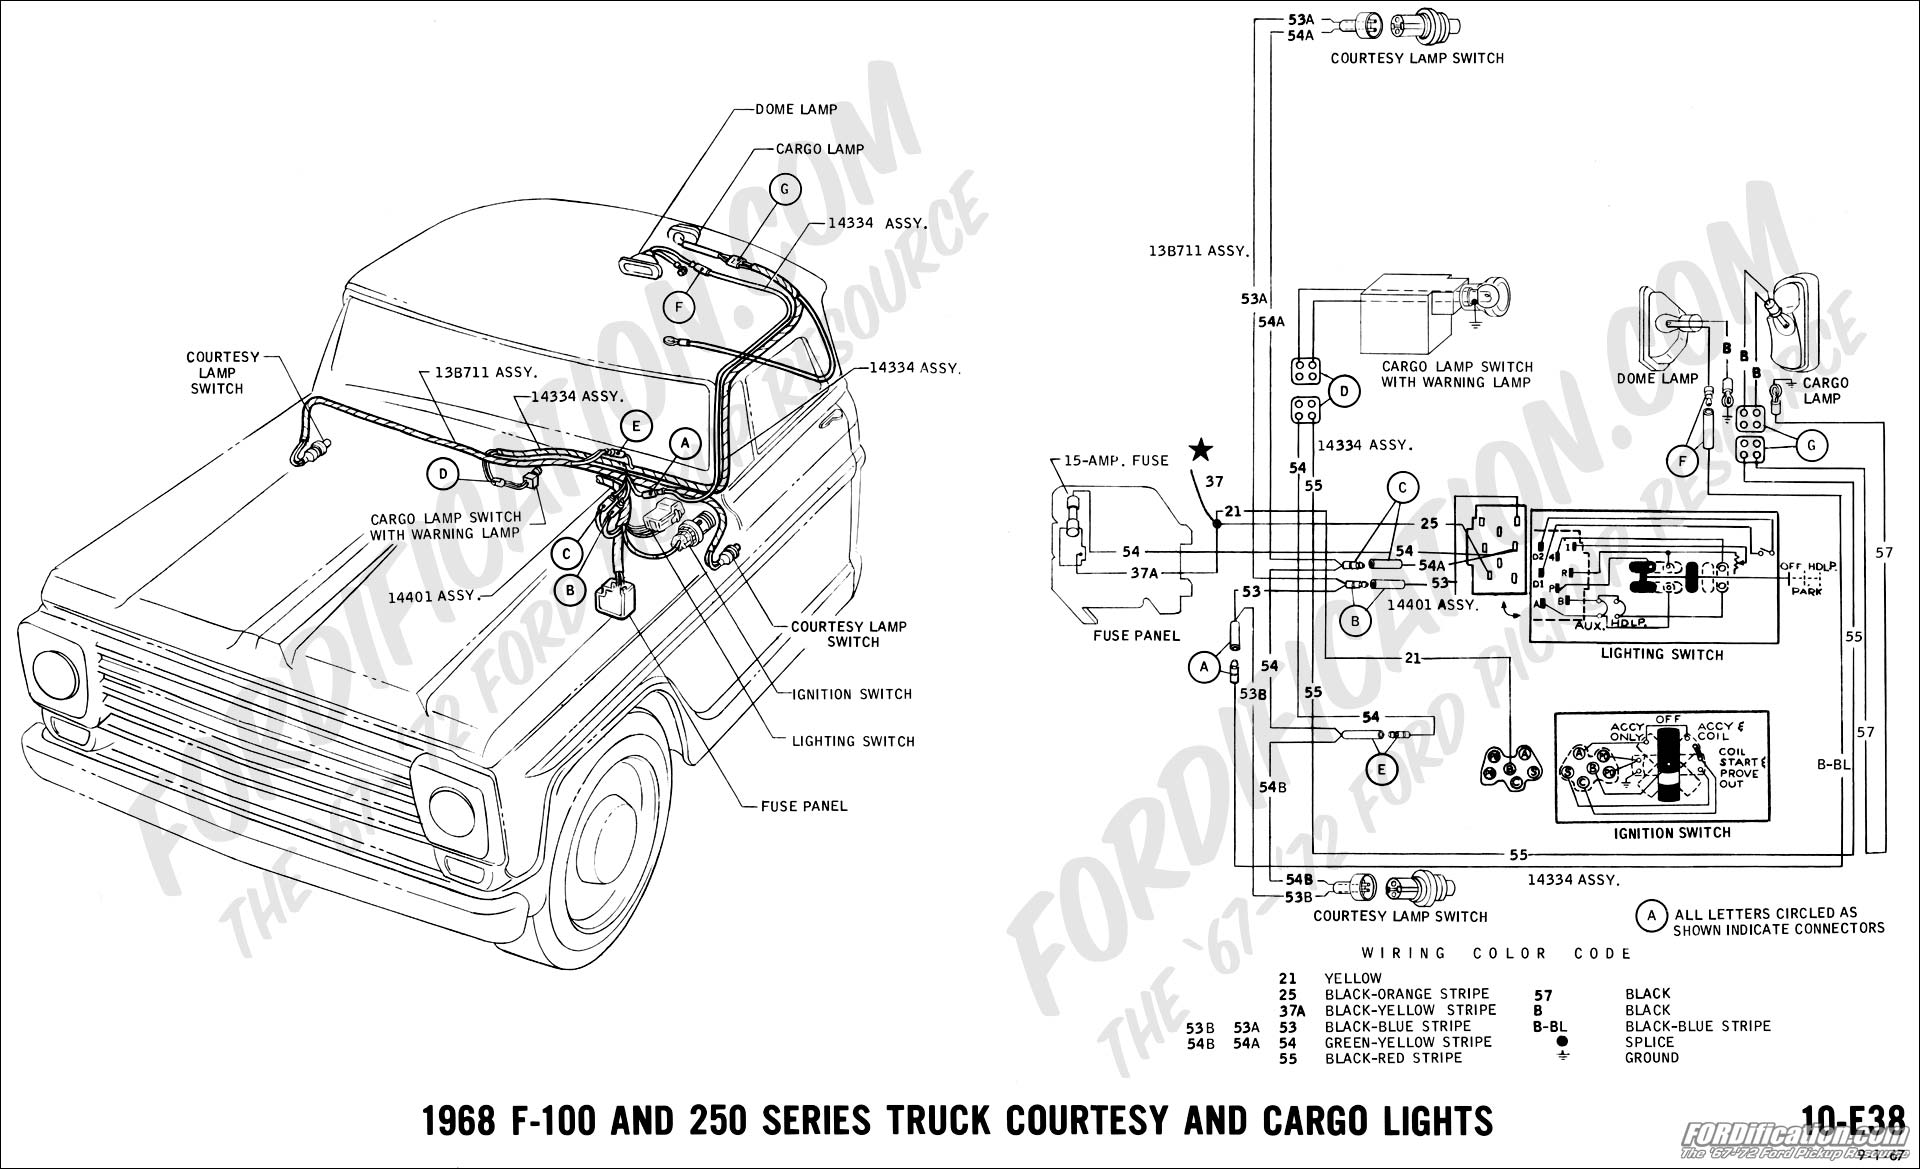 hight resolution of ford truck technical drawings and schematics section h wiring1968 f 100 and f 250 courtesy and